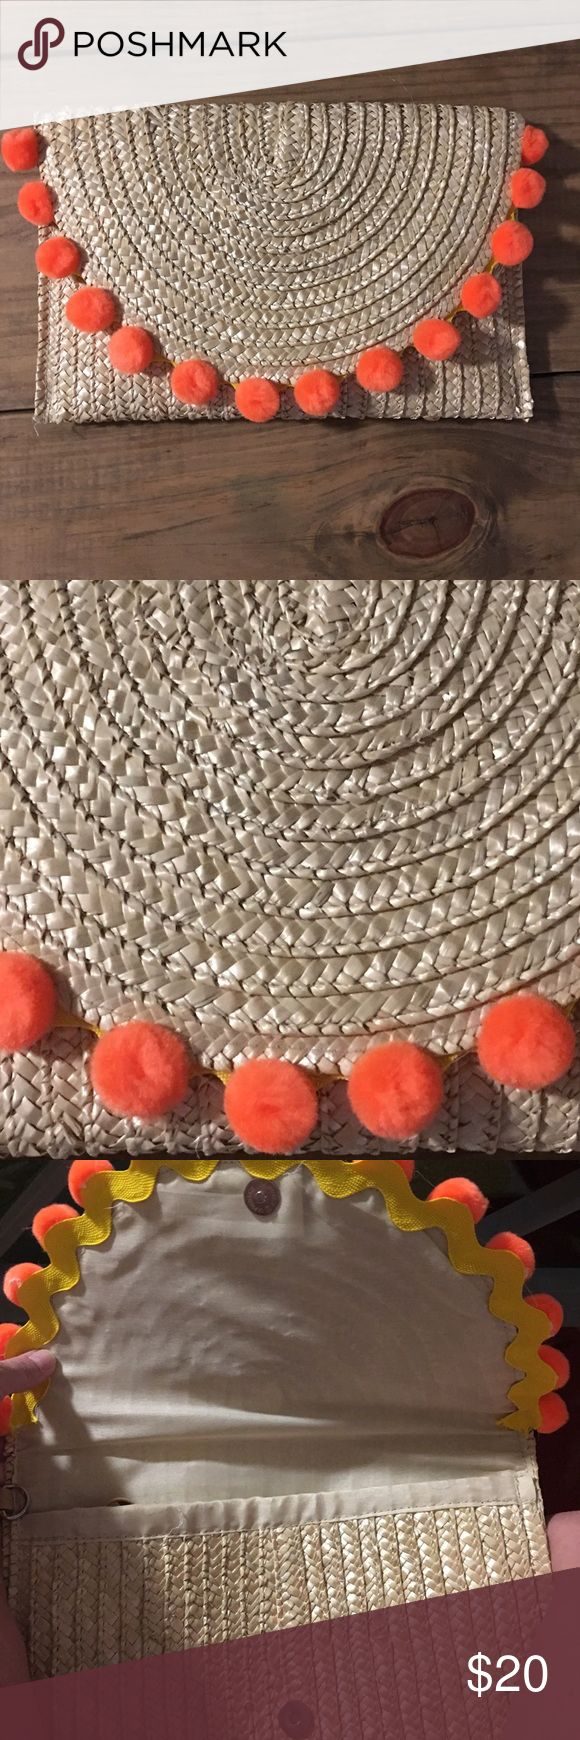 """PomPom Straw Clutch""""TOP TRENDS HOST PICK"""" Adorable Straw clutch with bright orange pompoms. Never used!! 12""""w x 8""""h. Removable Wrist strap will be included but seams of the strap shows glue. Bags Clutches & Wristlets"""